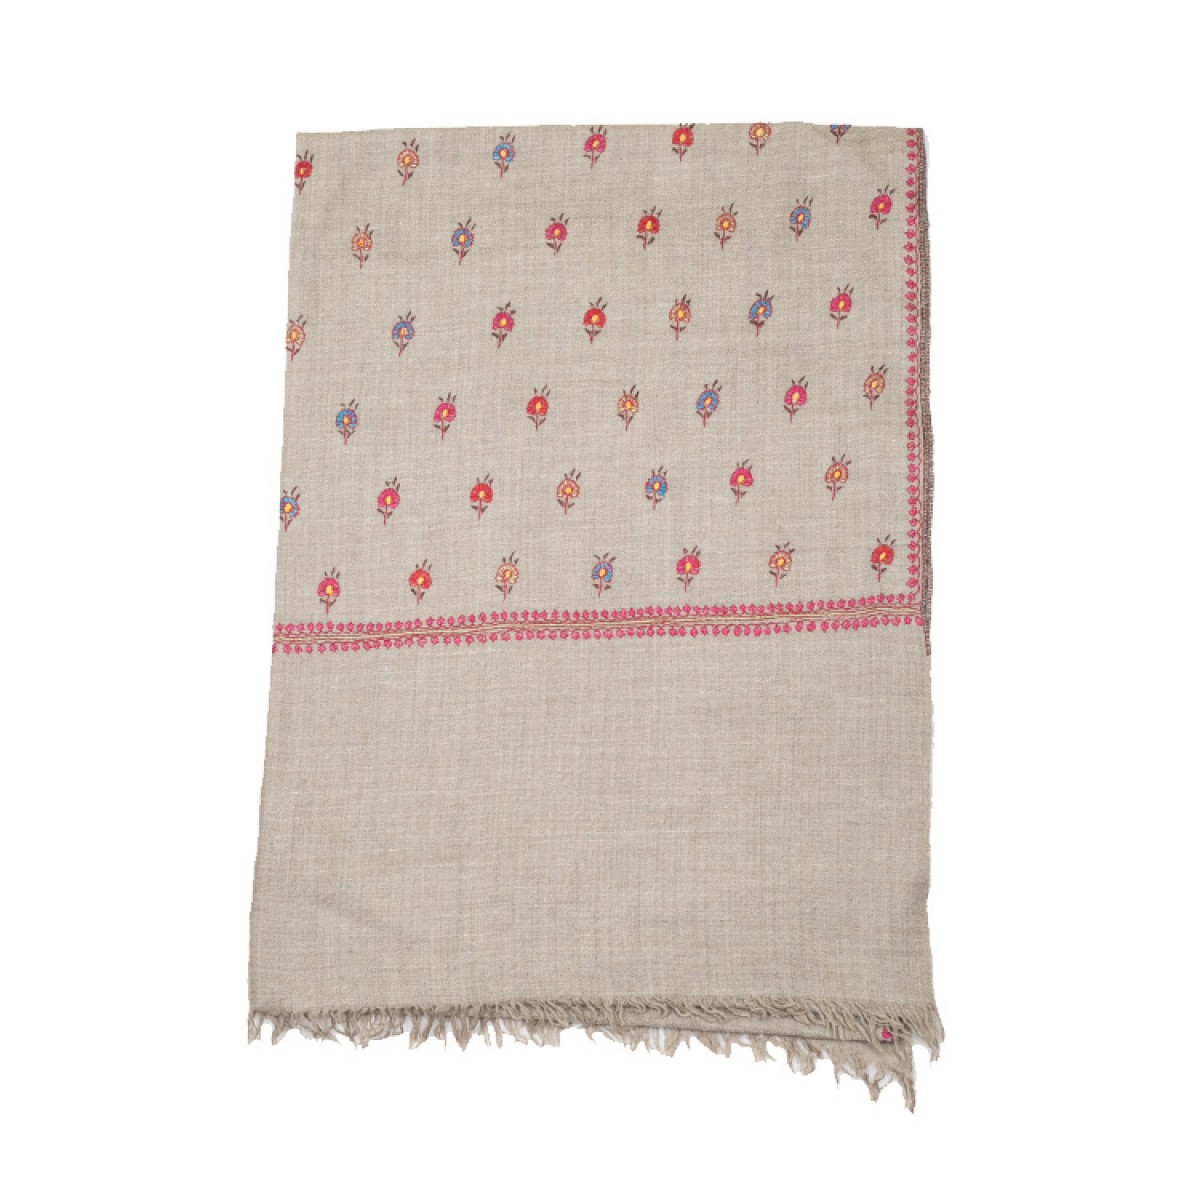 Embroidered Pashmina Stole - Natural & Multi